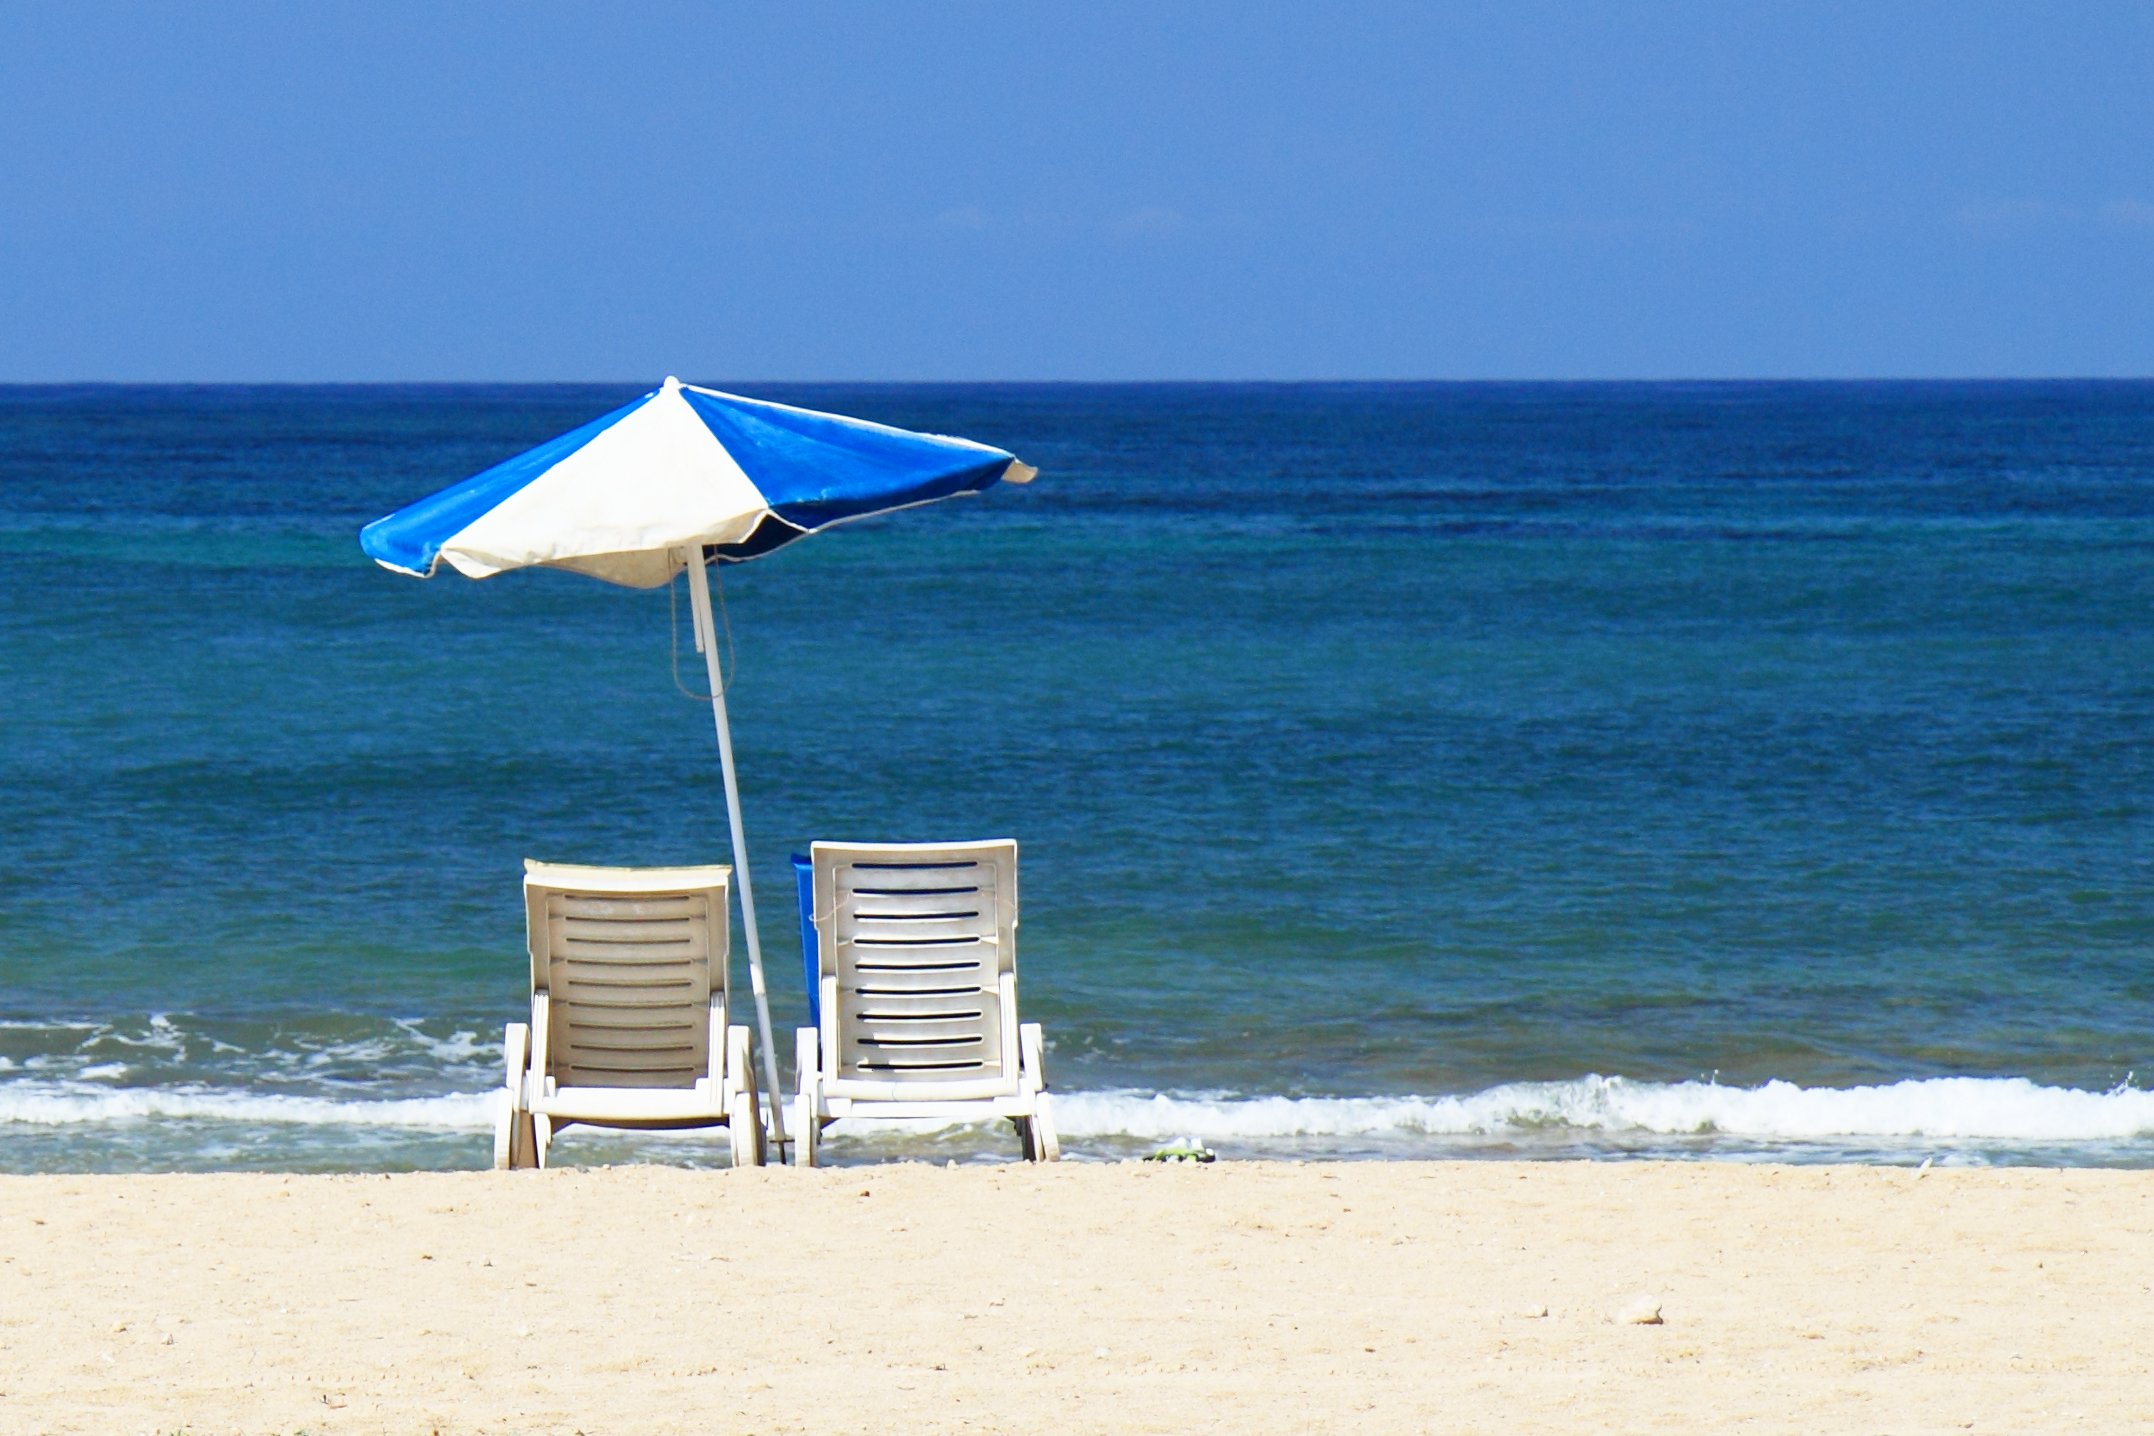 Parasol And Chairs On The Beach Free Image Download